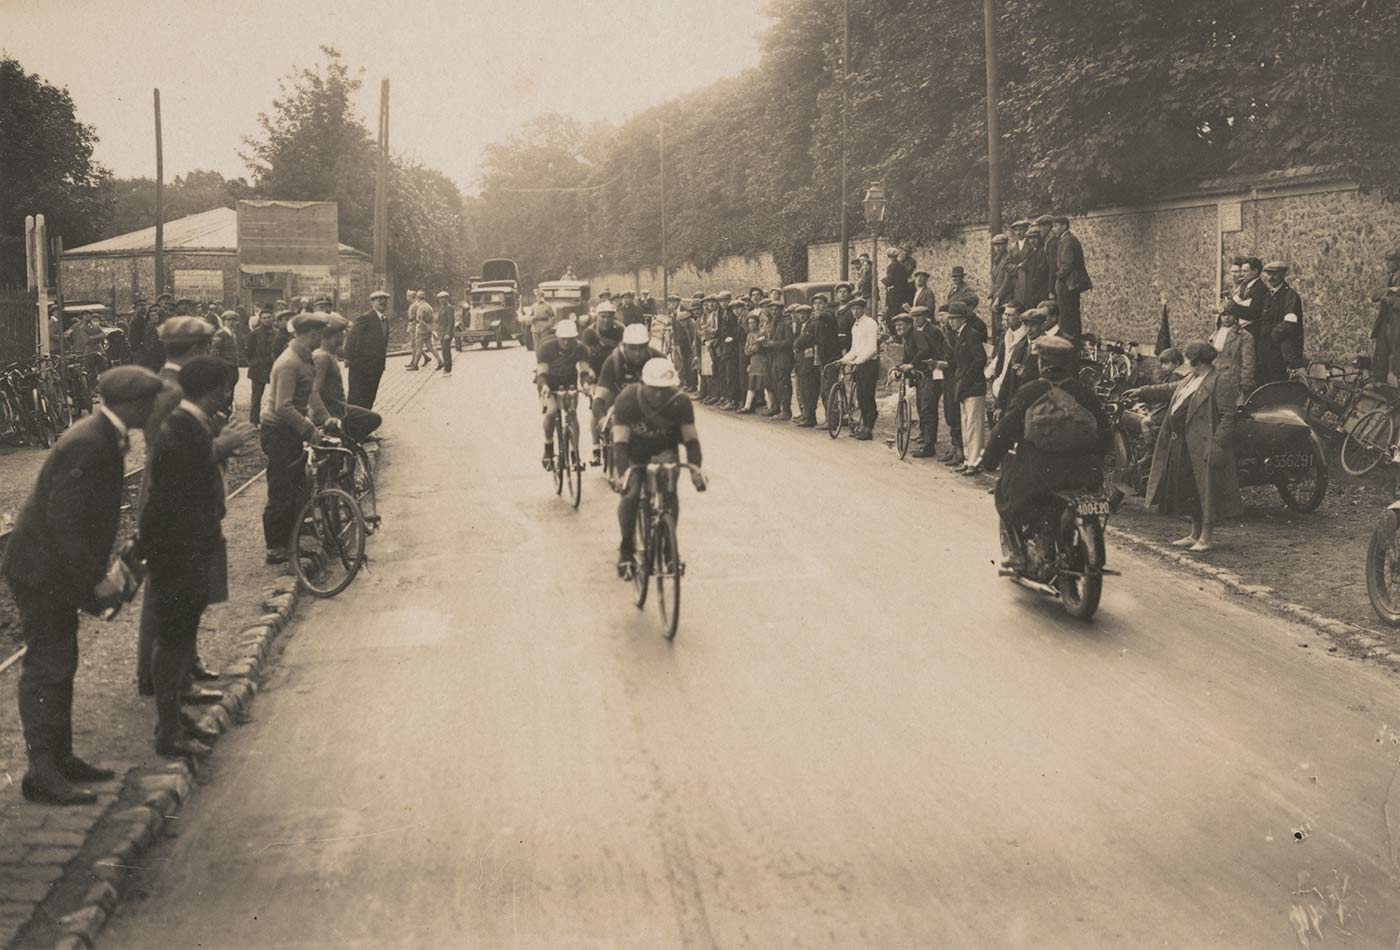 A black and white photo of Hubert Opperman leading a four-man team through a village during the Tour de France, 1928.  - click to view larger image